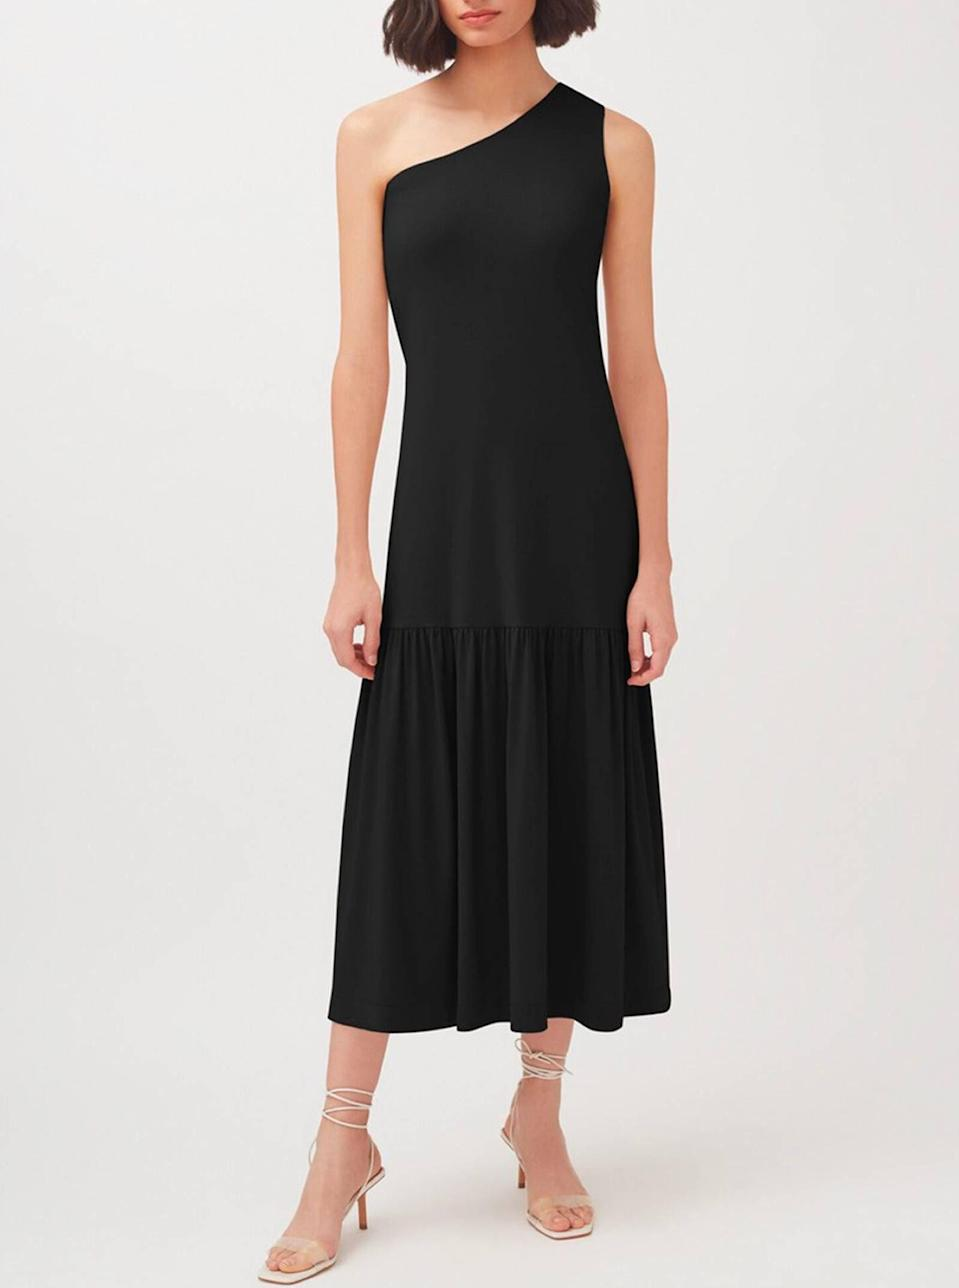 """This midi dress from <a href=""""https://www.glamour.com/story/sustainable-fashion-brands?mbid=synd_yahoo_rss"""" rel=""""nofollow noopener"""" target=""""_blank"""" data-ylk=""""slk:sustainable brand"""" class=""""link rapid-noclick-resp"""">sustainable brand</a> Cuyana gets points for its simple sophistication that can be dressed up or down and styled in million-and-one ways. And who doesn't love an <a href=""""https://www.glamour.com/gallery/mismatched-earring-trend?mbid=synd_yahoo_rss"""" rel=""""nofollow noopener"""" target=""""_blank"""" data-ylk=""""slk:asymmetrical"""" class=""""link rapid-noclick-resp"""">asymmetrical</a> detail? $135, Cuyana. <a href=""""https://www.cuyana.com/clothing/dresses/one-shoulder-dress/20021741.html"""" rel=""""nofollow noopener"""" target=""""_blank"""" data-ylk=""""slk:Get it now!"""" class=""""link rapid-noclick-resp"""">Get it now!</a>"""